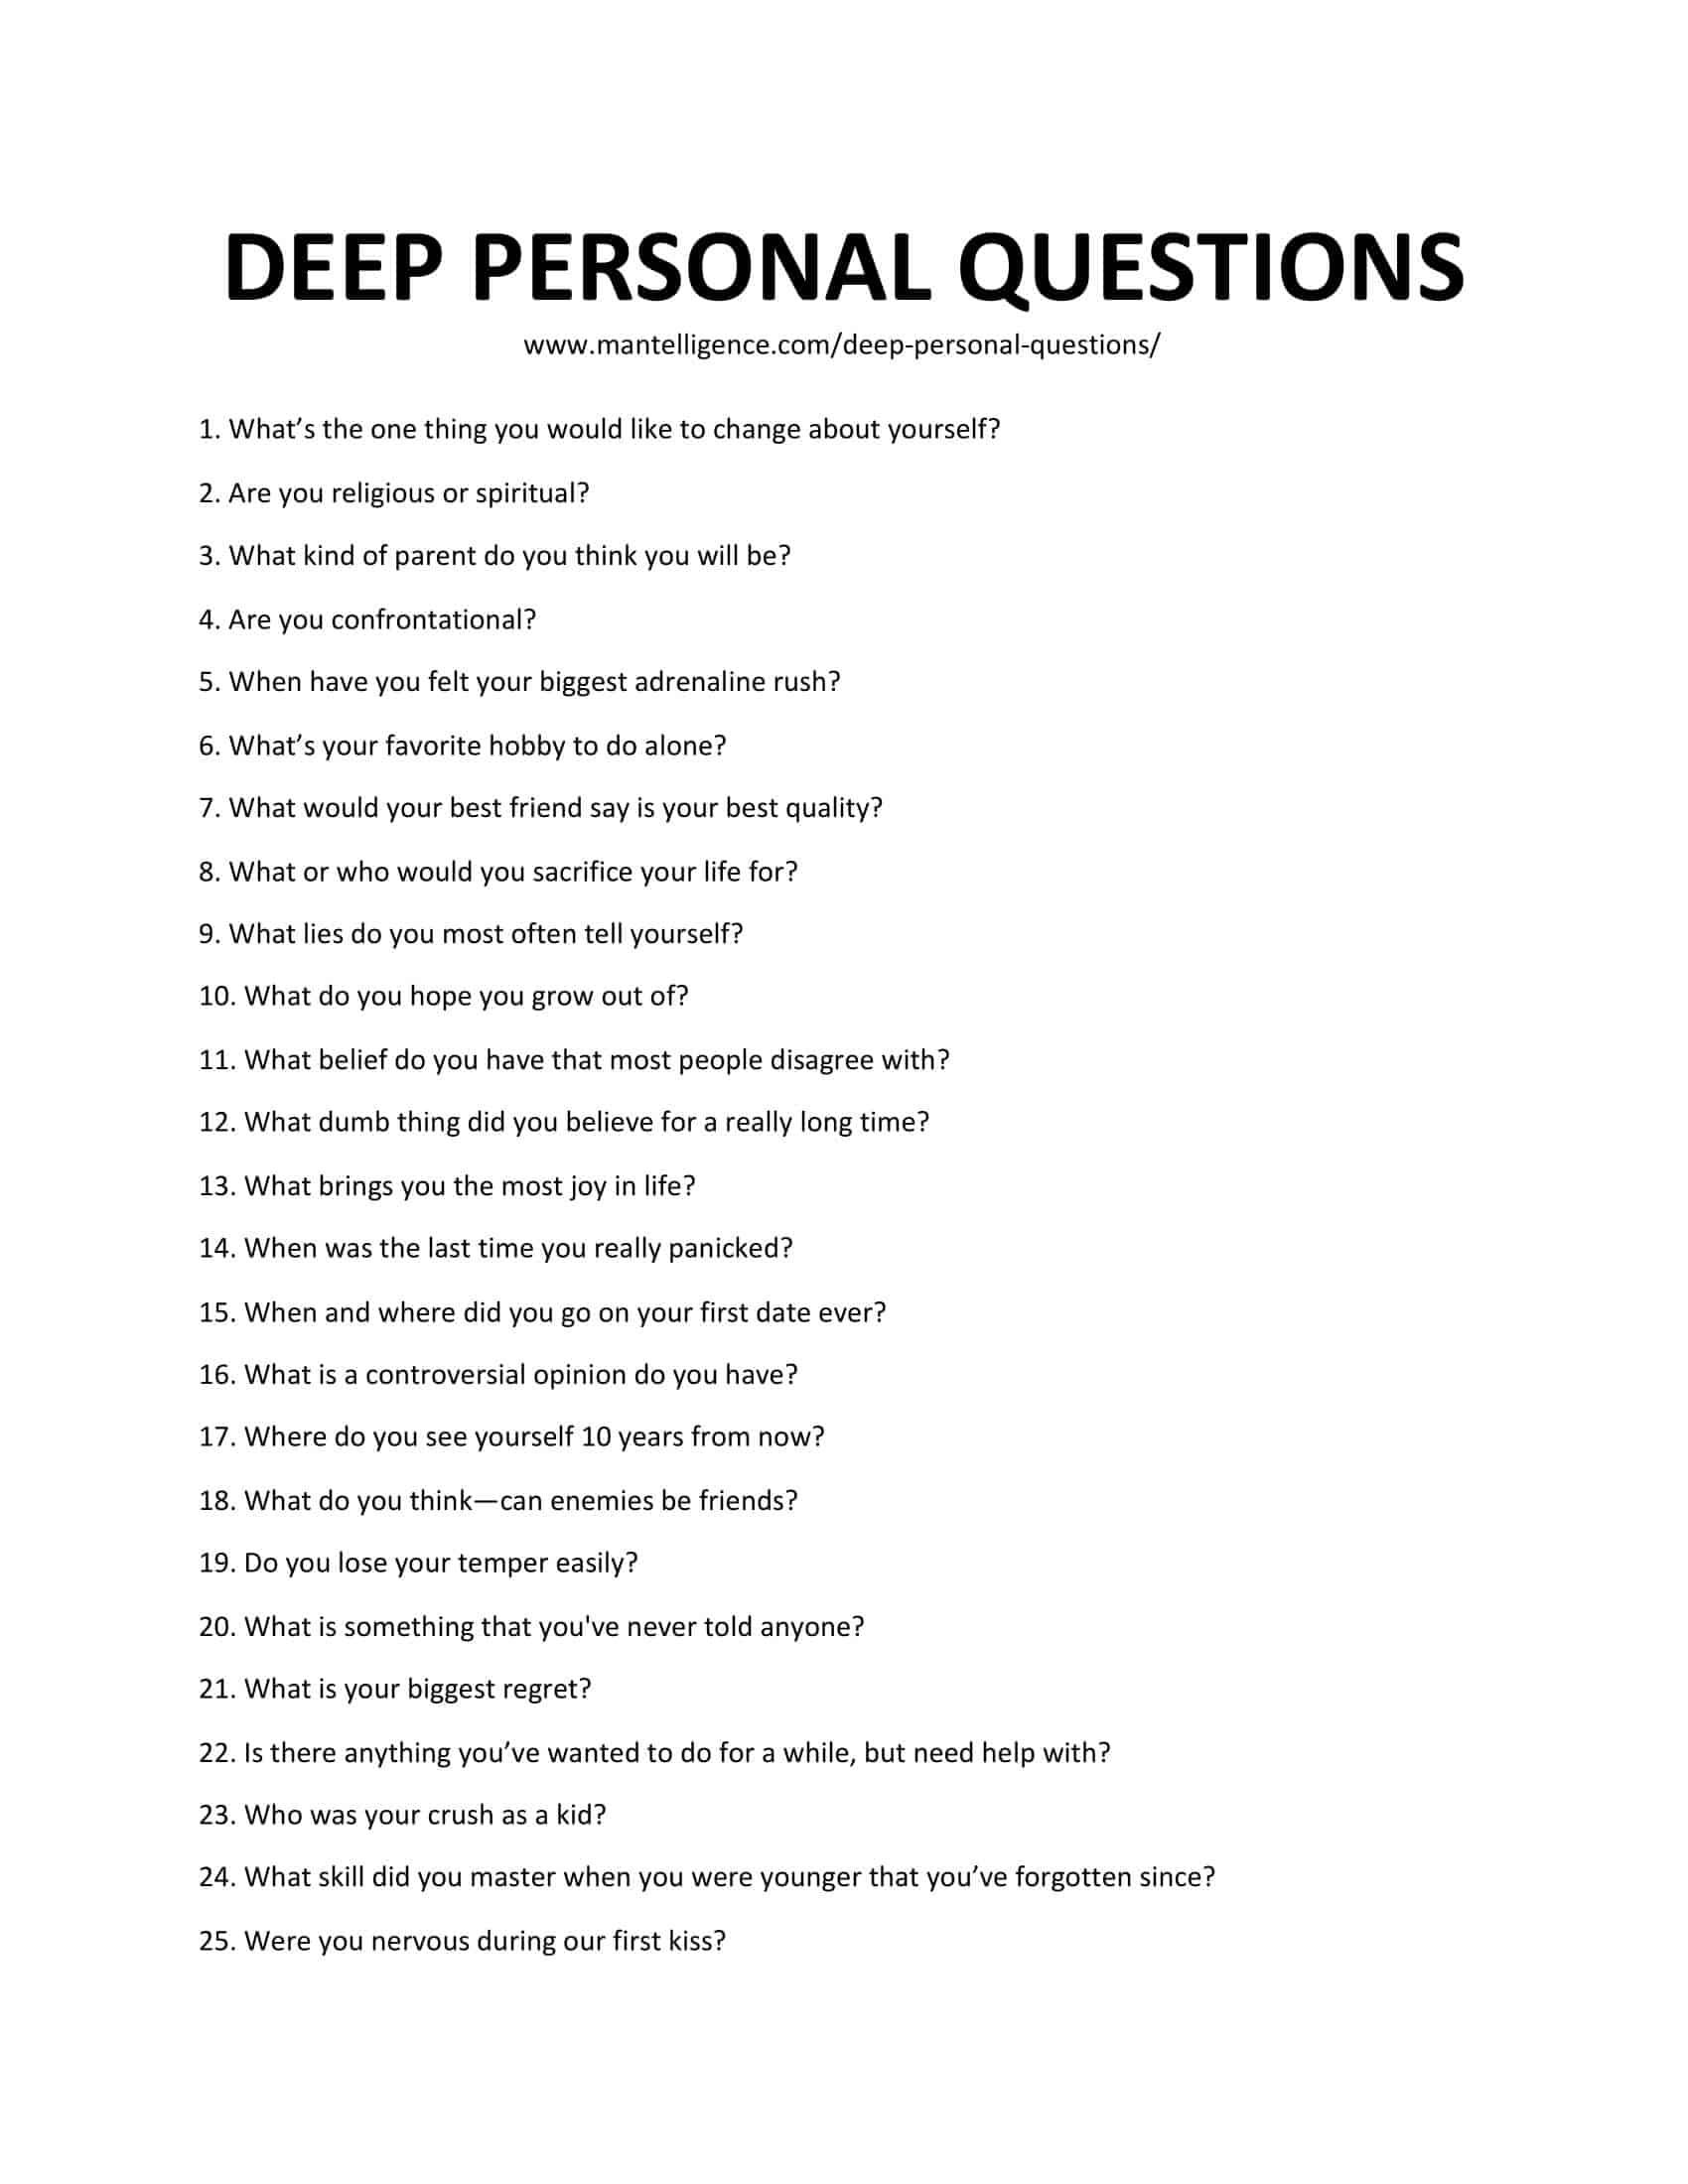 Questions to ask to keep a conversation going